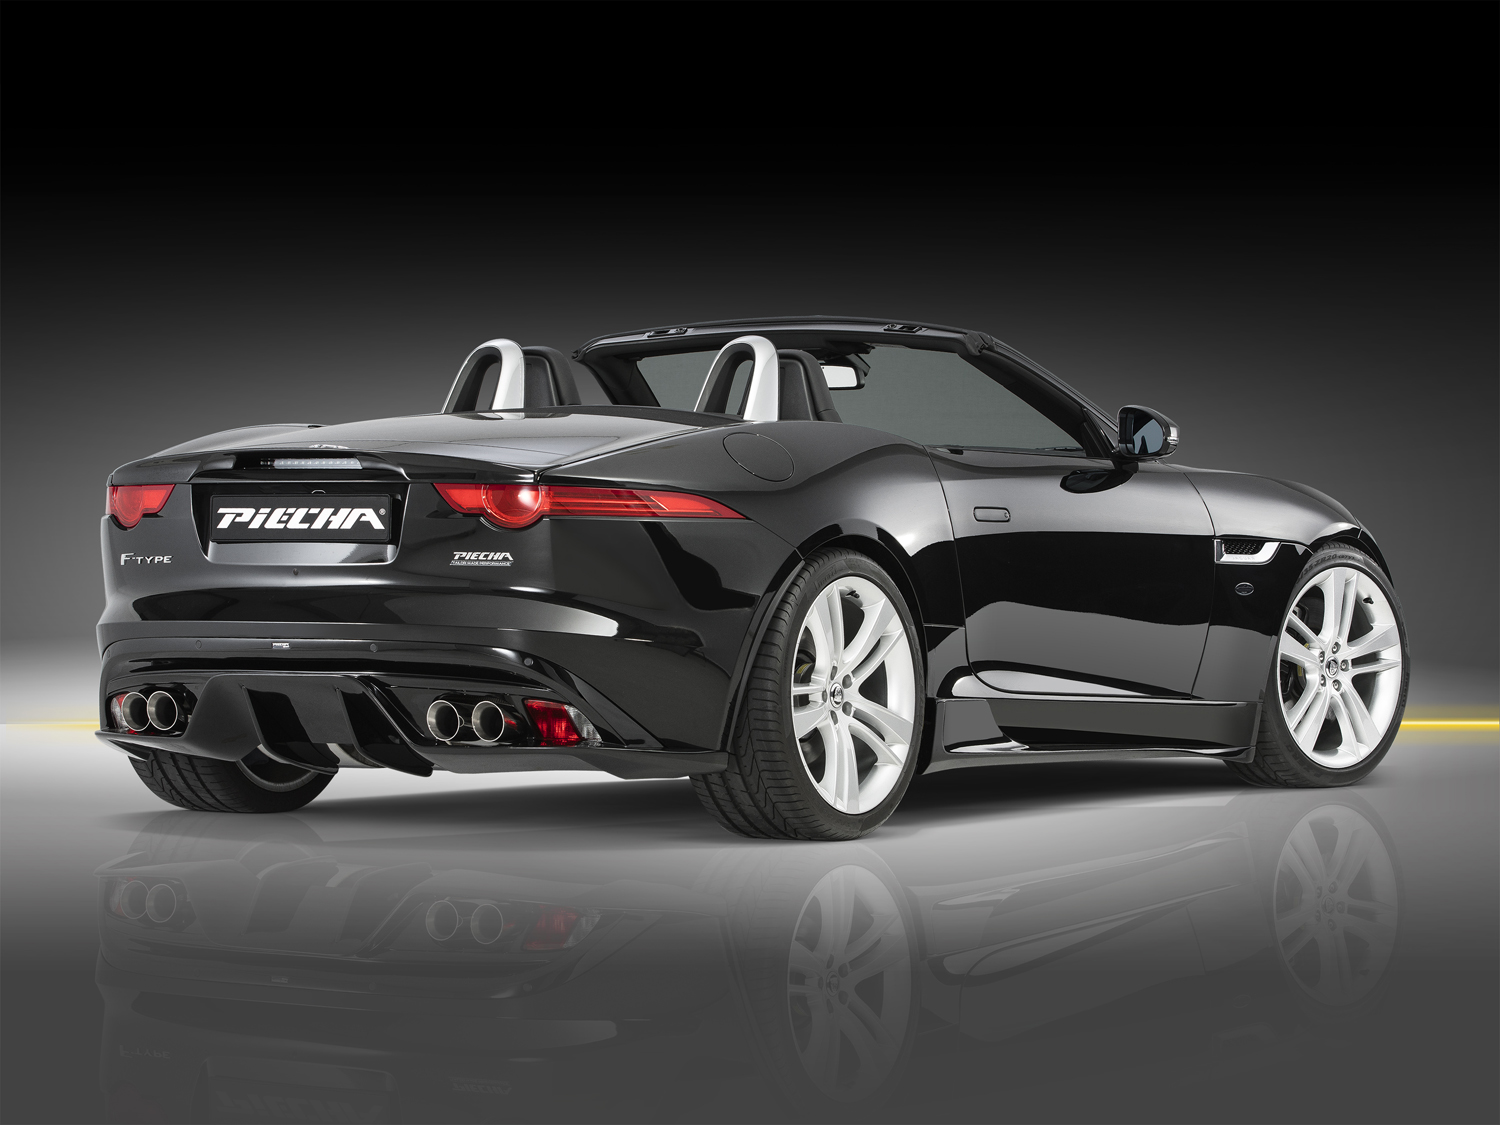 piecha 39 s f type shows there 39 s more than one way to skin a jag. Black Bedroom Furniture Sets. Home Design Ideas